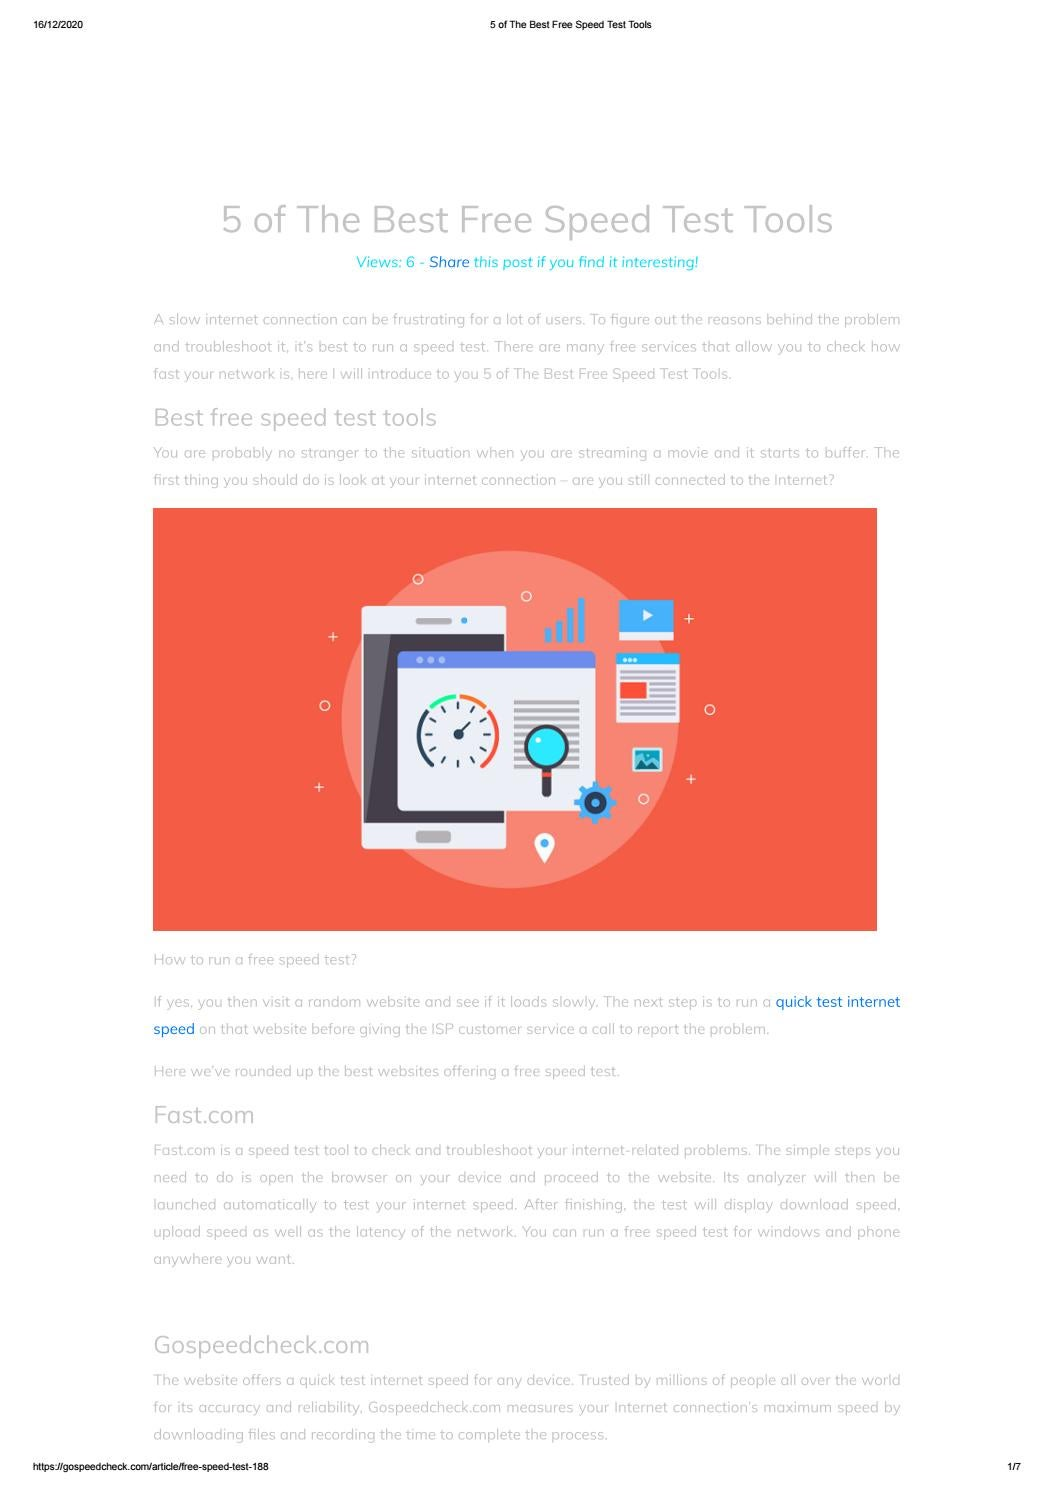 5 Of The Best Free Speed Test Tools By Gospeedcheck Com Issuu